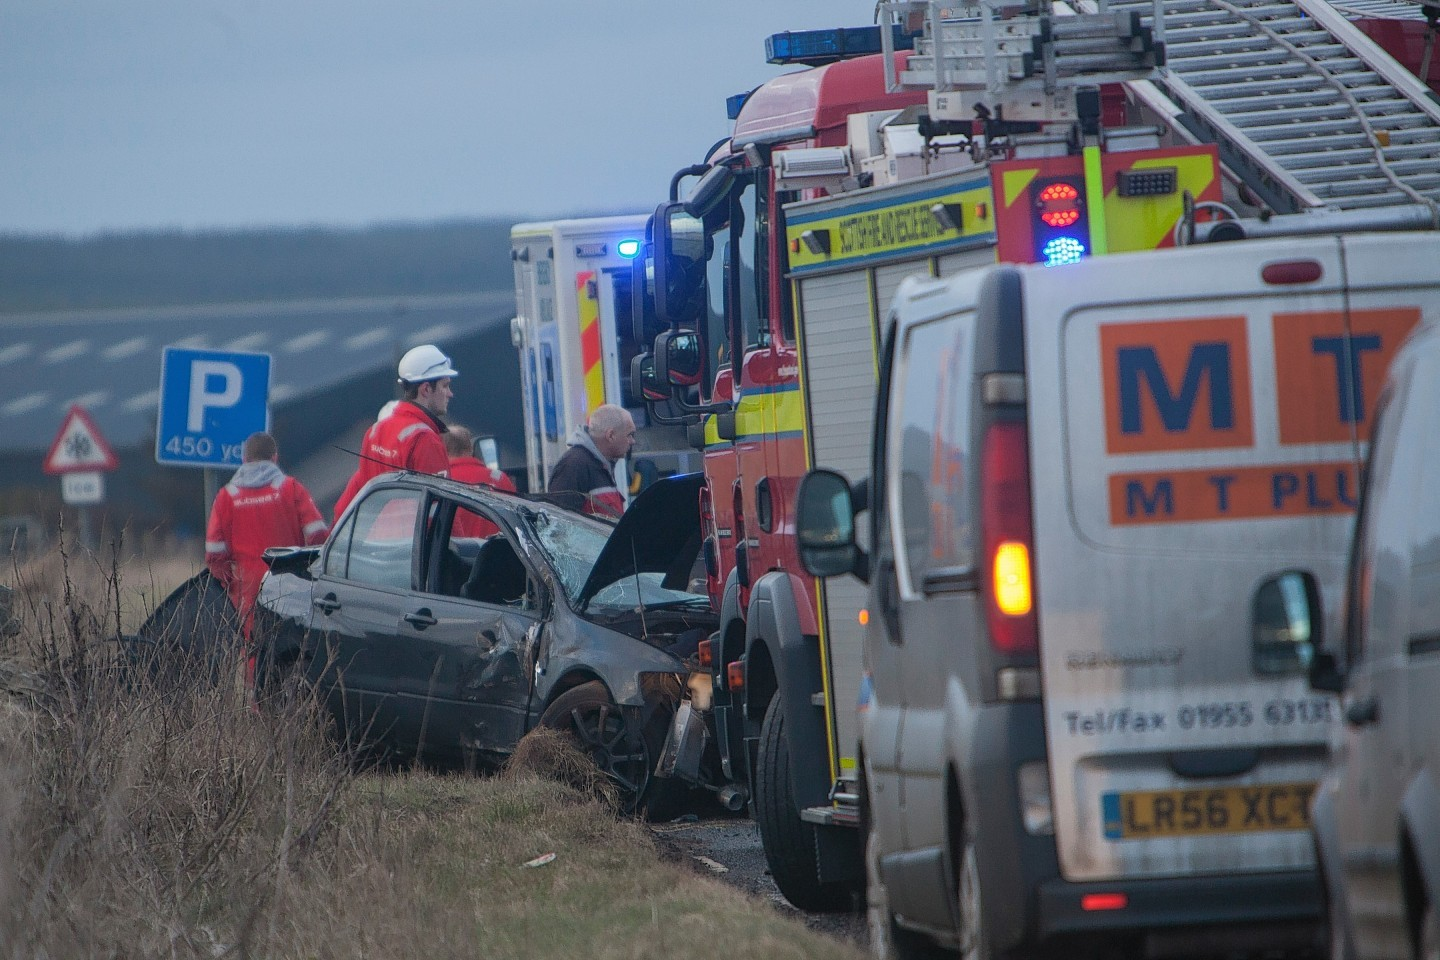 Emergency services at the scene of the accident on the A99